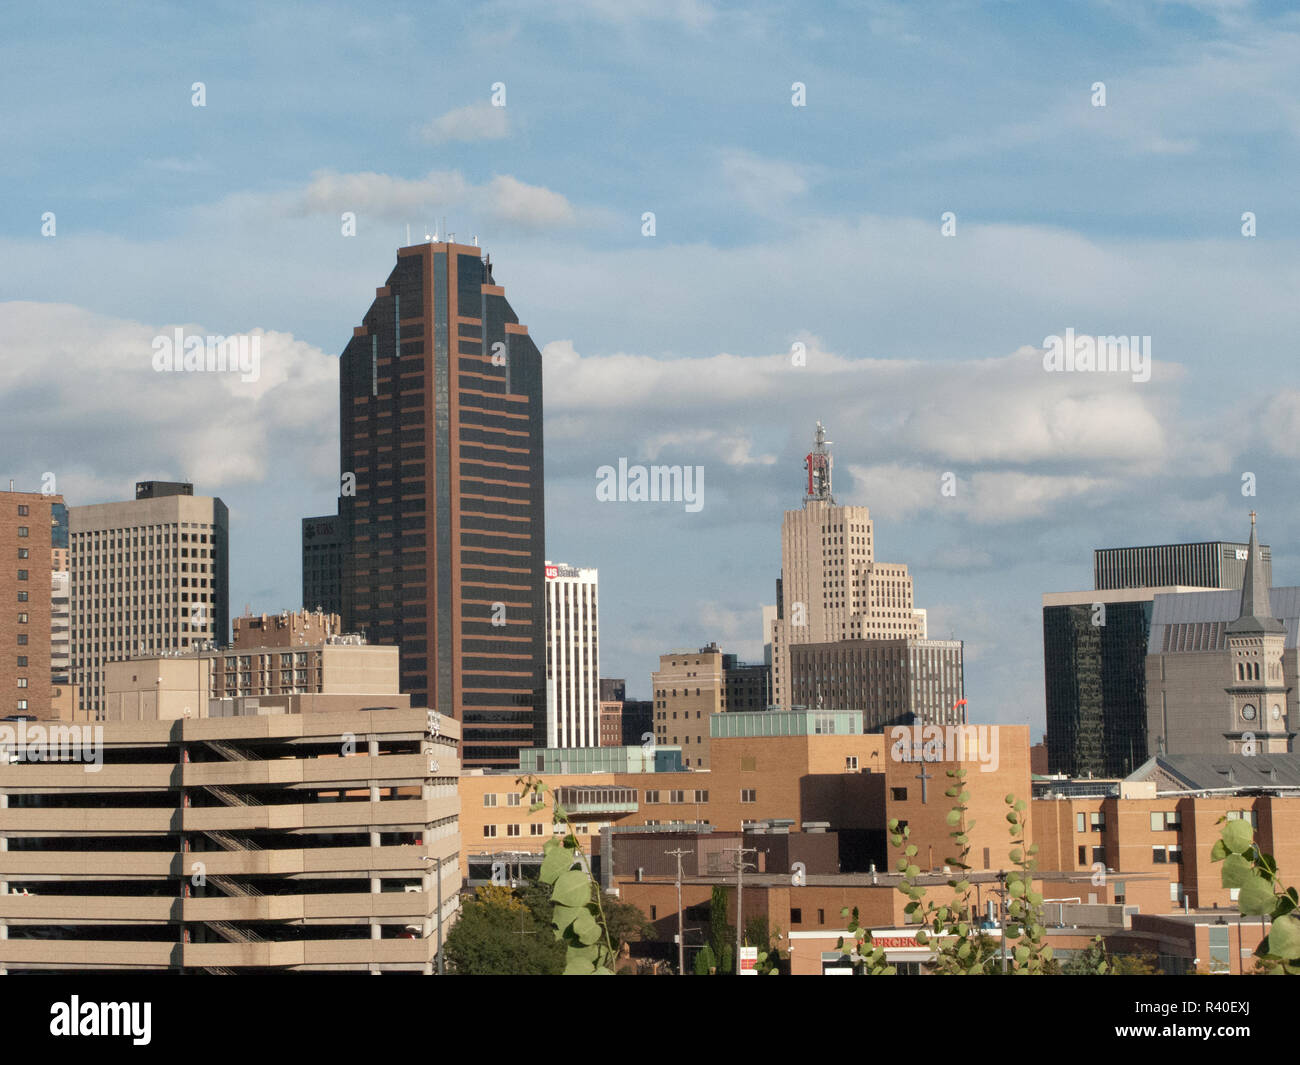 USA, Minnesota, Saint Paul, Minnesota Saint Paul Skyline from Minnesota History Center - Stock Image